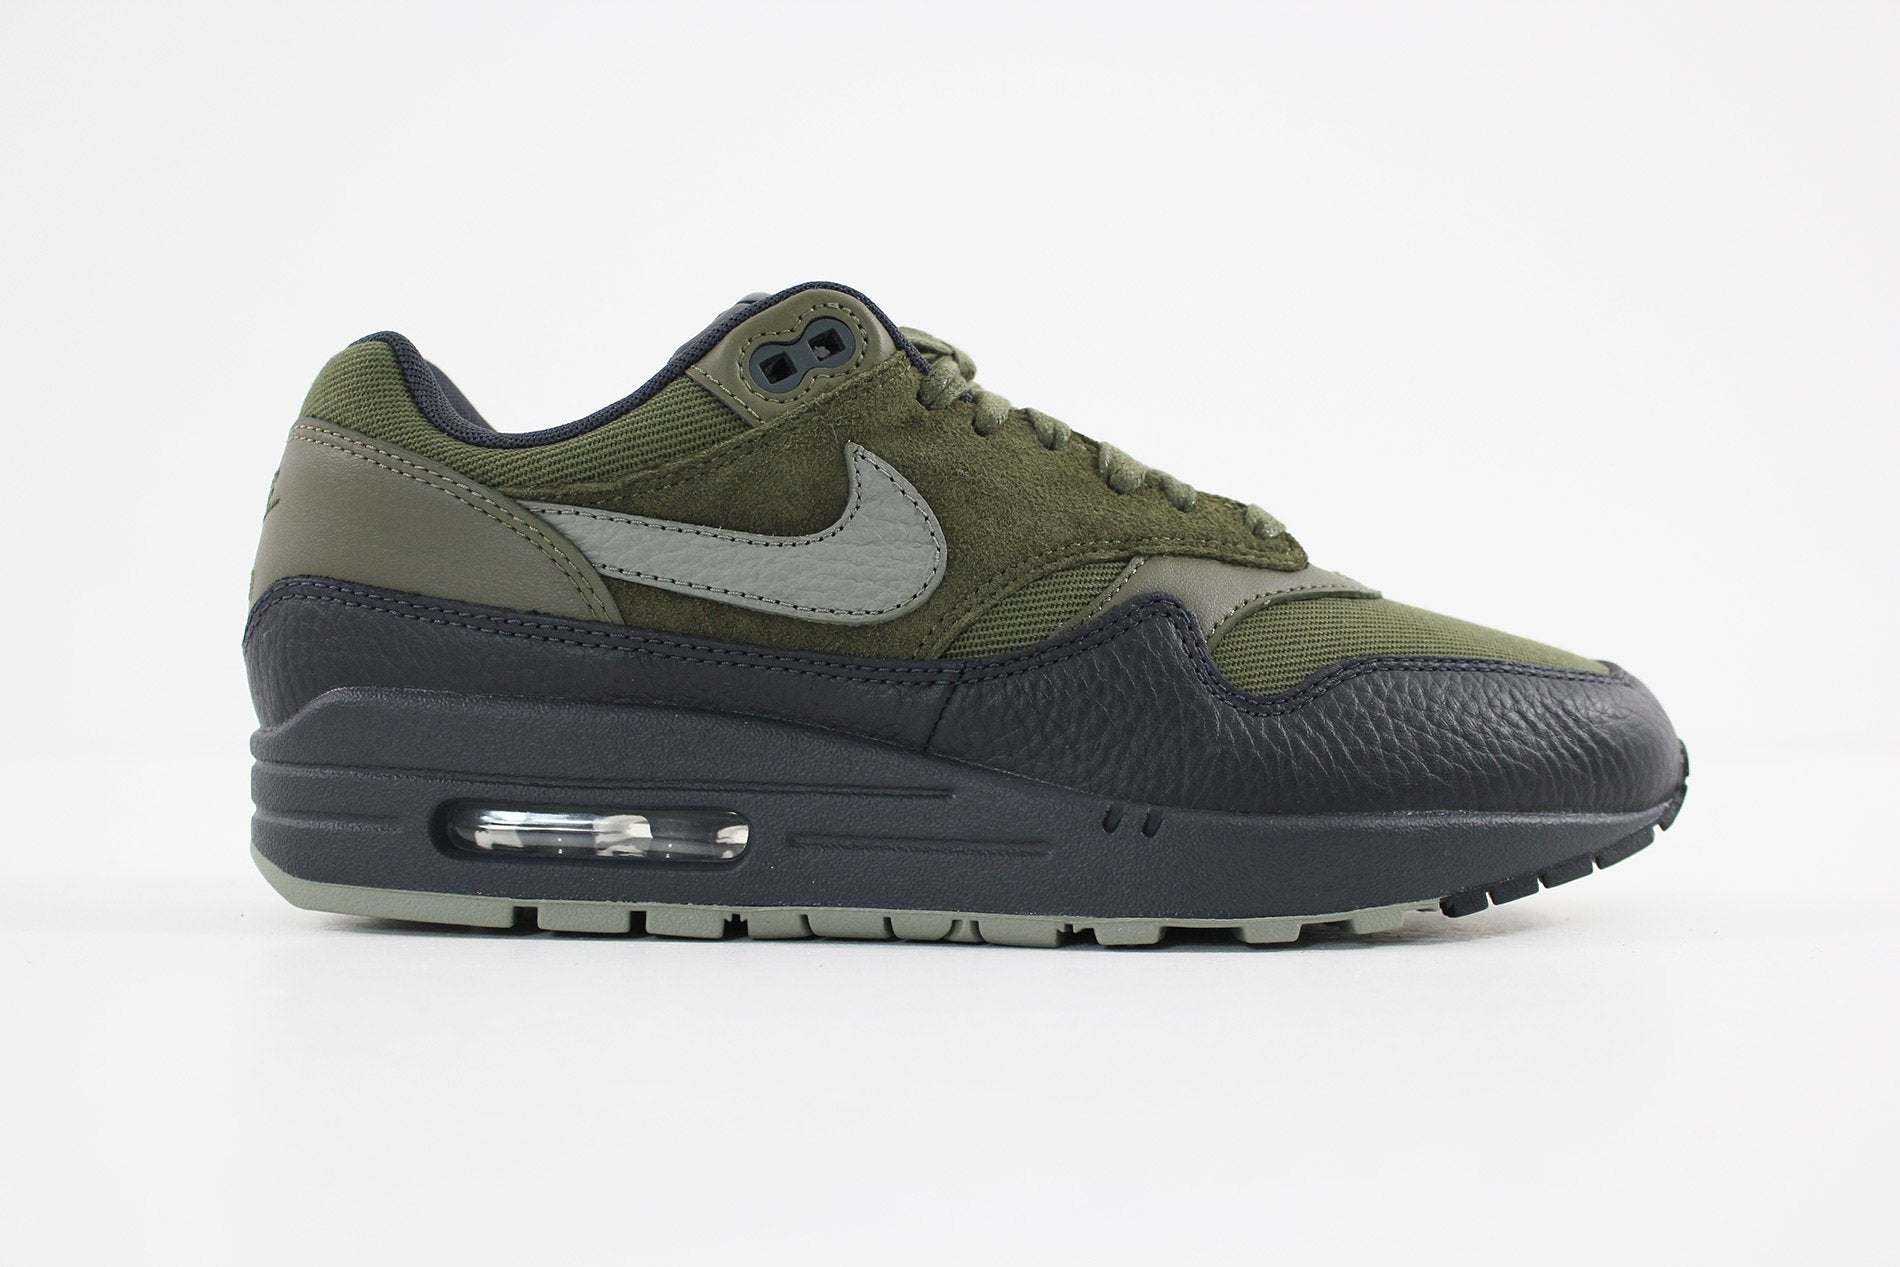 buy online d714e 20f2e Nike - Men's Air Max 1 Premium Shoe (MEDIUM OLIVE/DARK STUCCO-ANTHRACITE